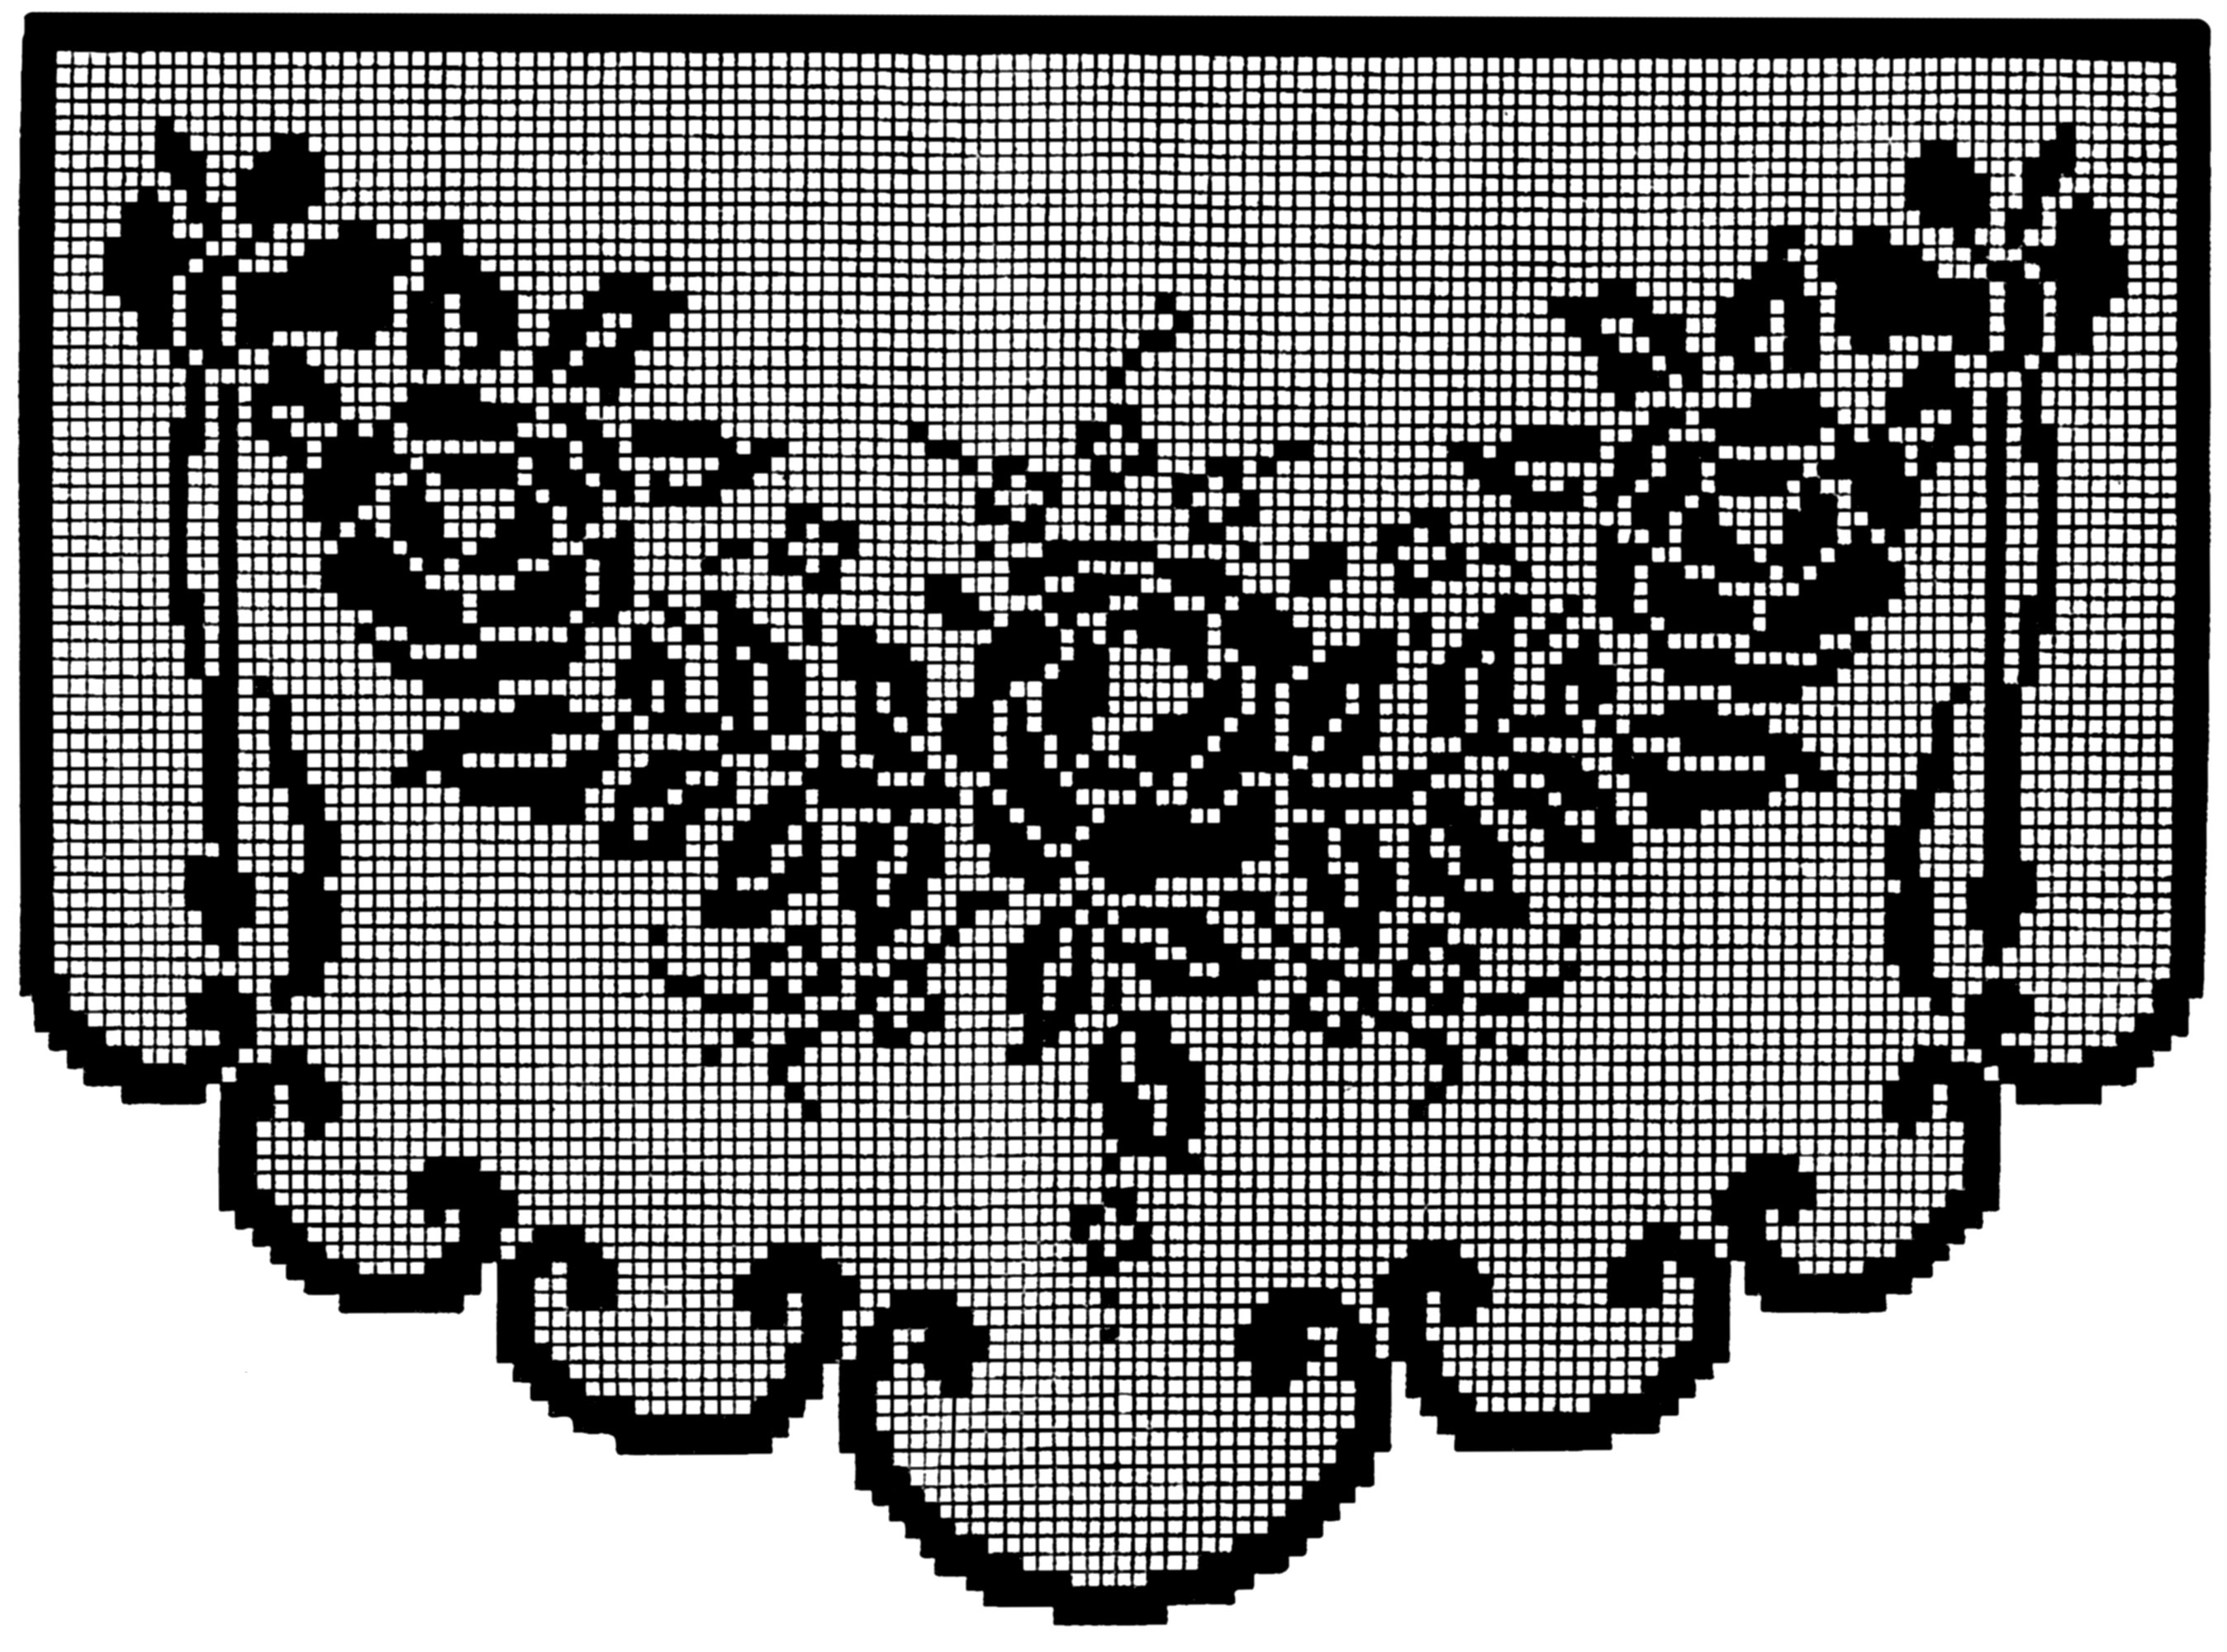 Grid patterns for filet crochet or cross stitch 1923 q is for earlier posts containing mother goose grid patterns are available in earlier posts here and here bankloansurffo Image collections